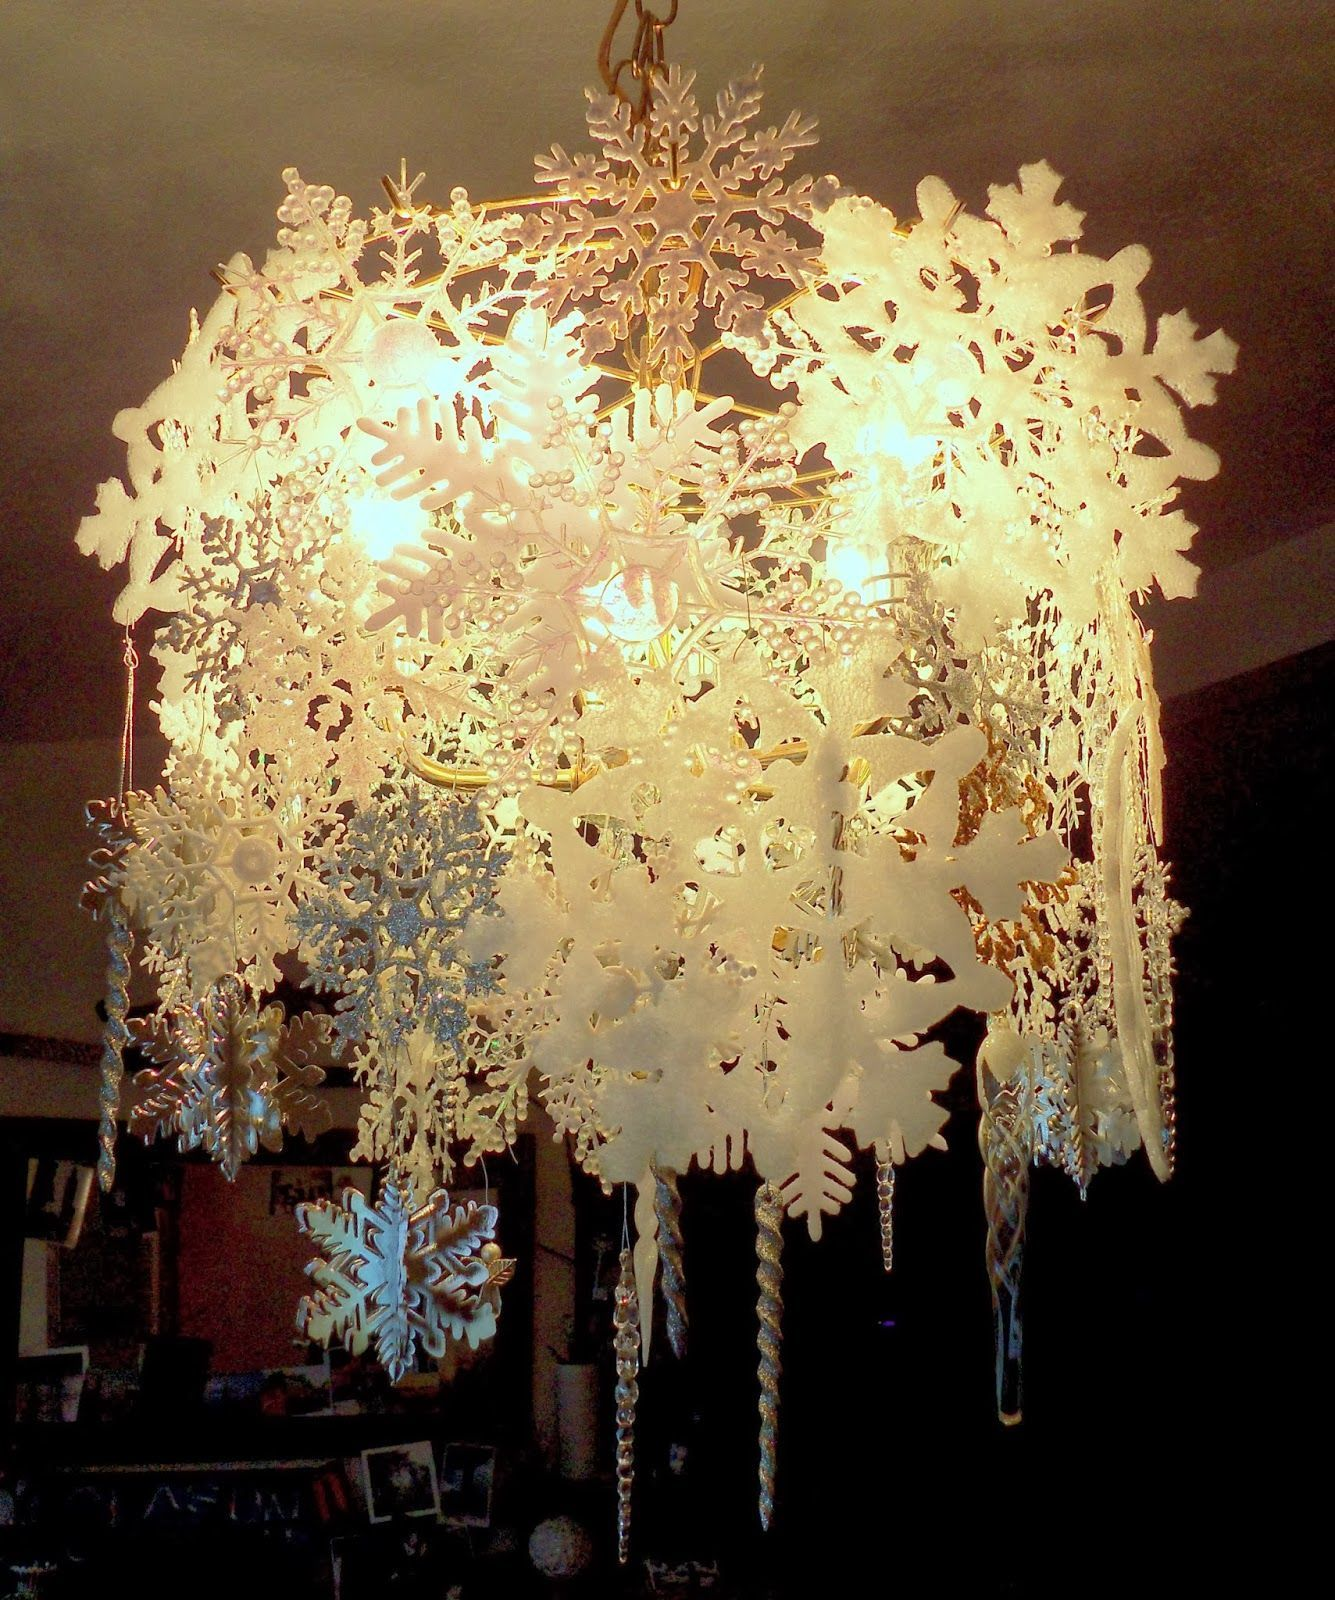 Wintry snowflake chandelier chandelier christmas winter crafts wintry snowflake chandelier chandelier christmas winter crafts christmas crafts christmas ideas christmas decorations christmas decor christmas mozeypictures Choice Image